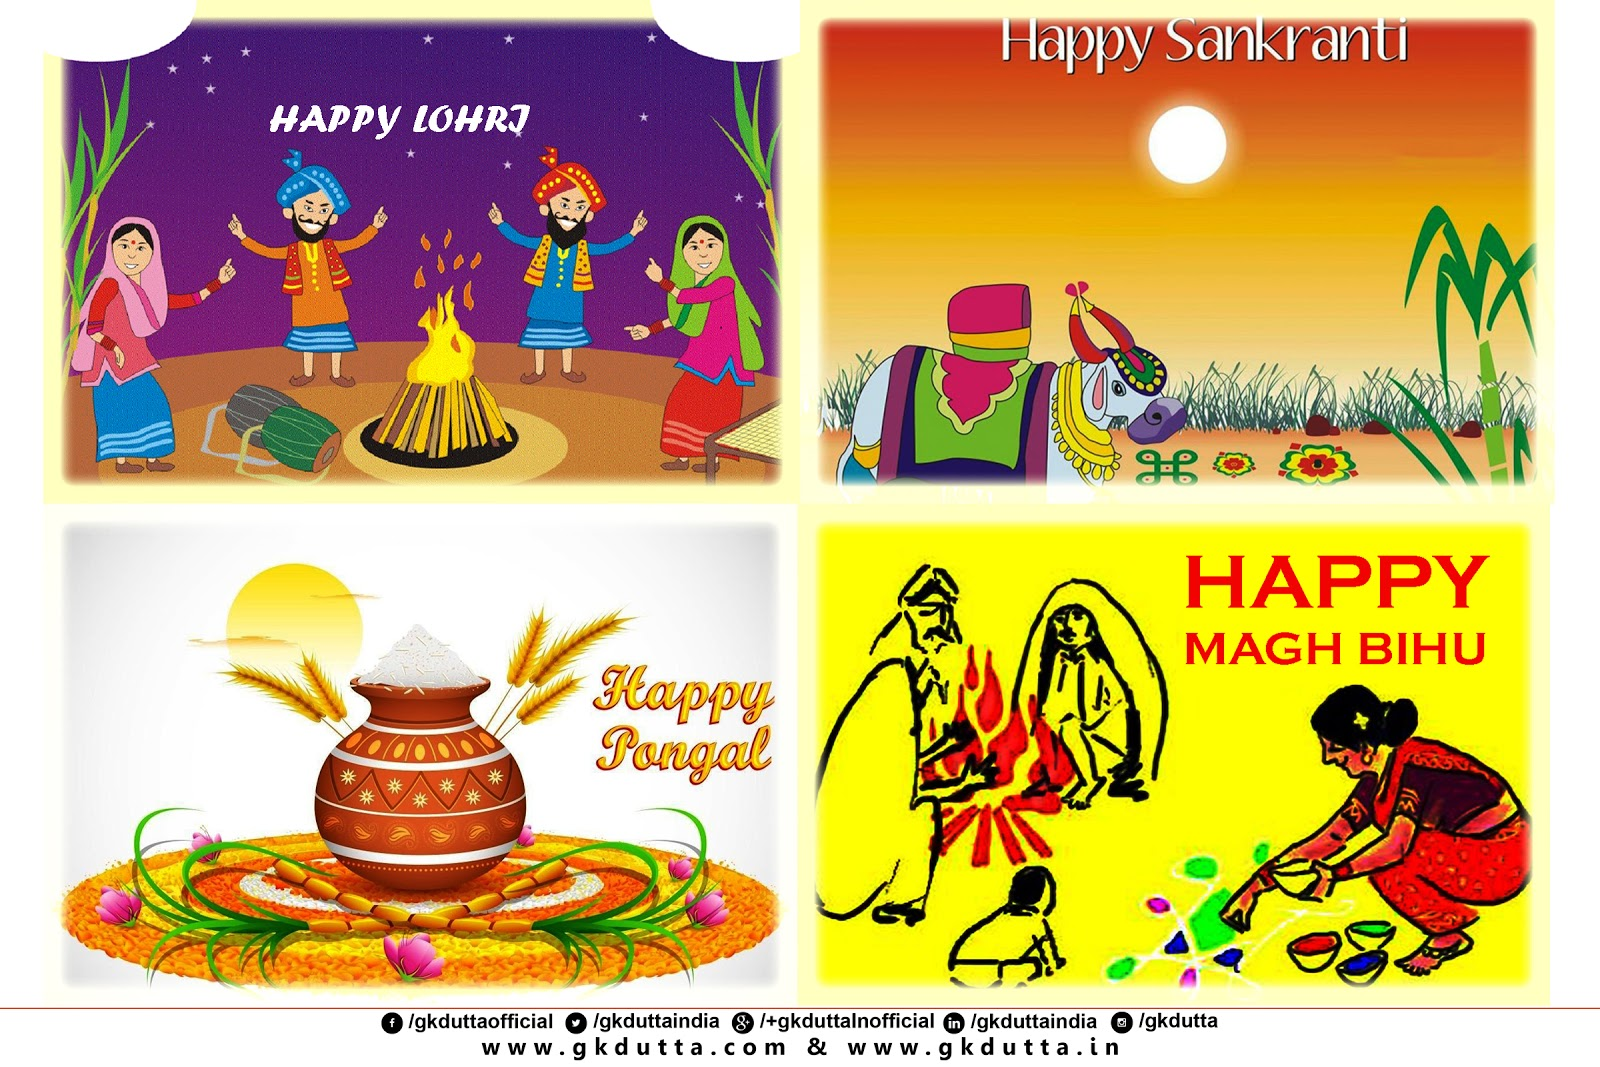 Greetings on the eve of lohri makar sankranti pongal and magh bihu on the auspicious occasion of lohri makar sankranti pongal and magh bihu i extend warm greetings and good wishes to all my well wishers m4hsunfo